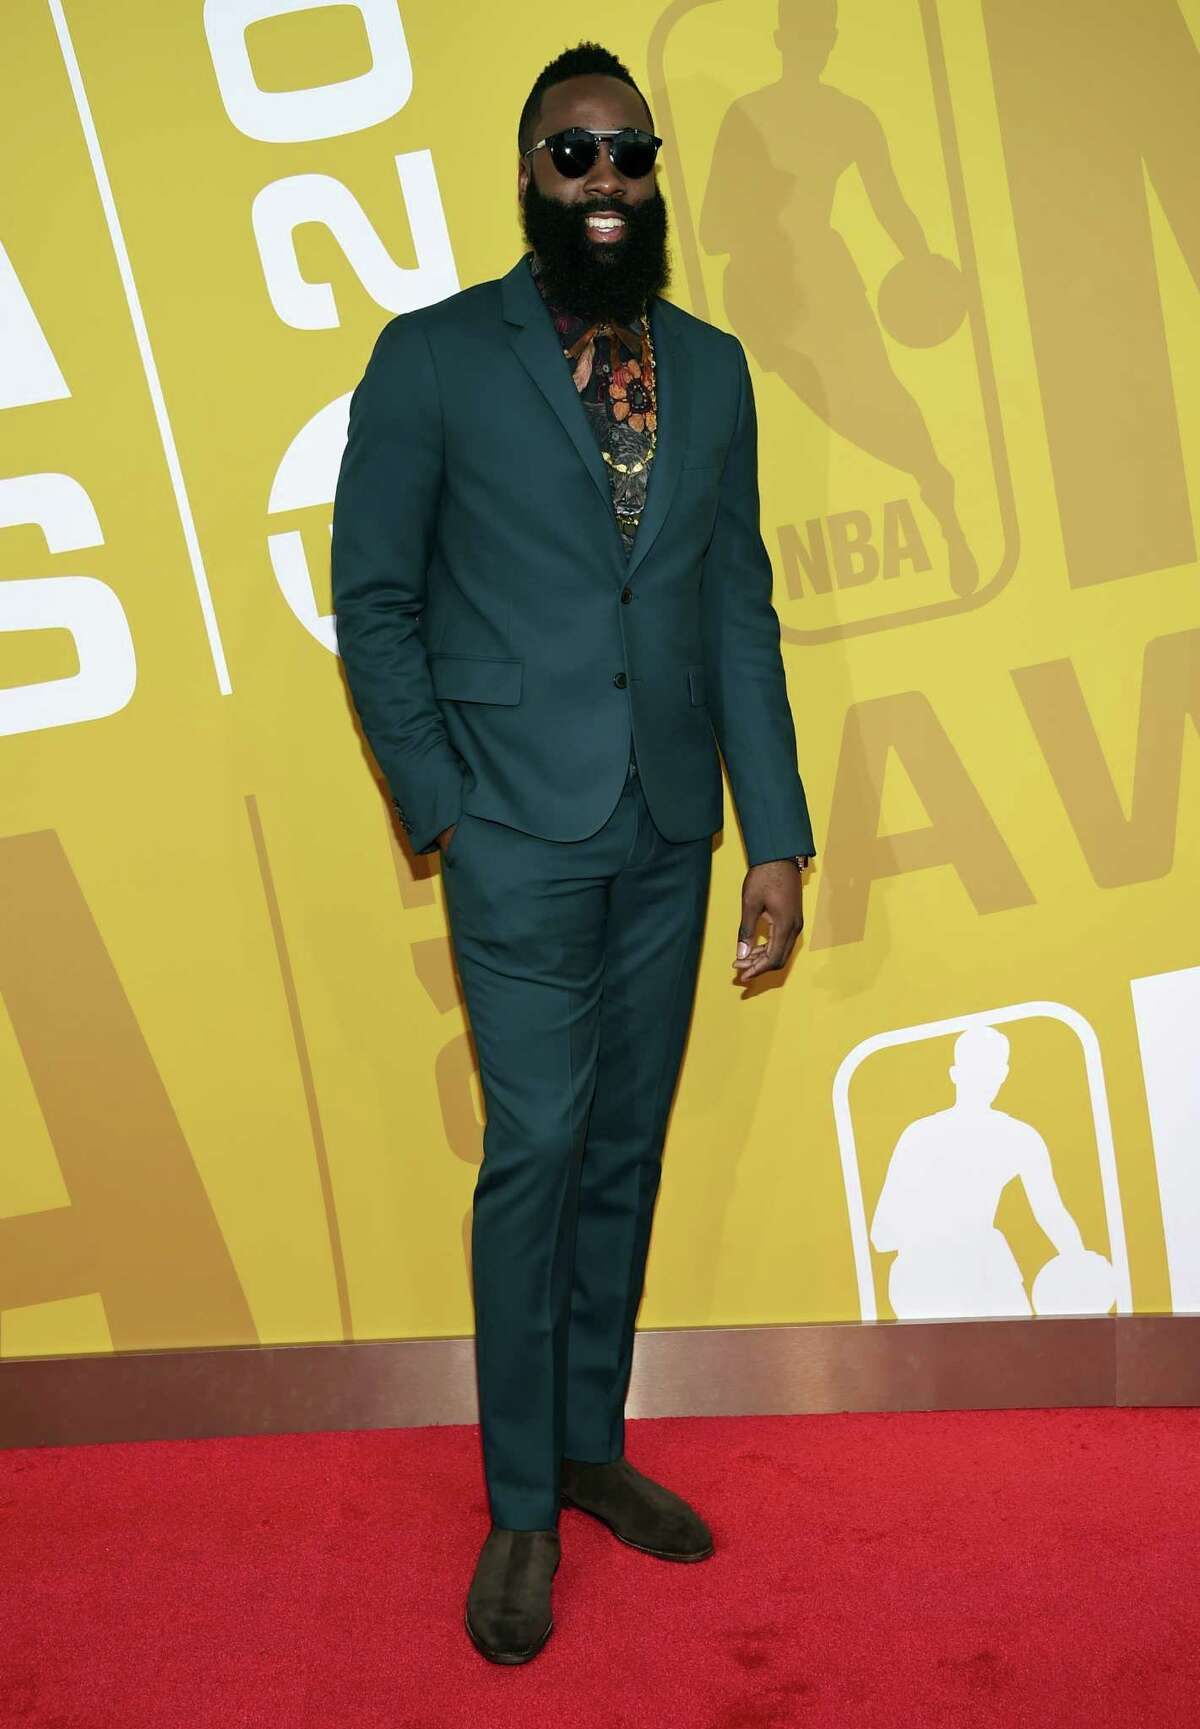 NBA player James Harden, of the Houston Rockets, arrives at the NBA Awards at Basketball City at Pier 36 on Monday, June 26, 2017, in New York. (Photo by Evan Agostini/Invision/AP)